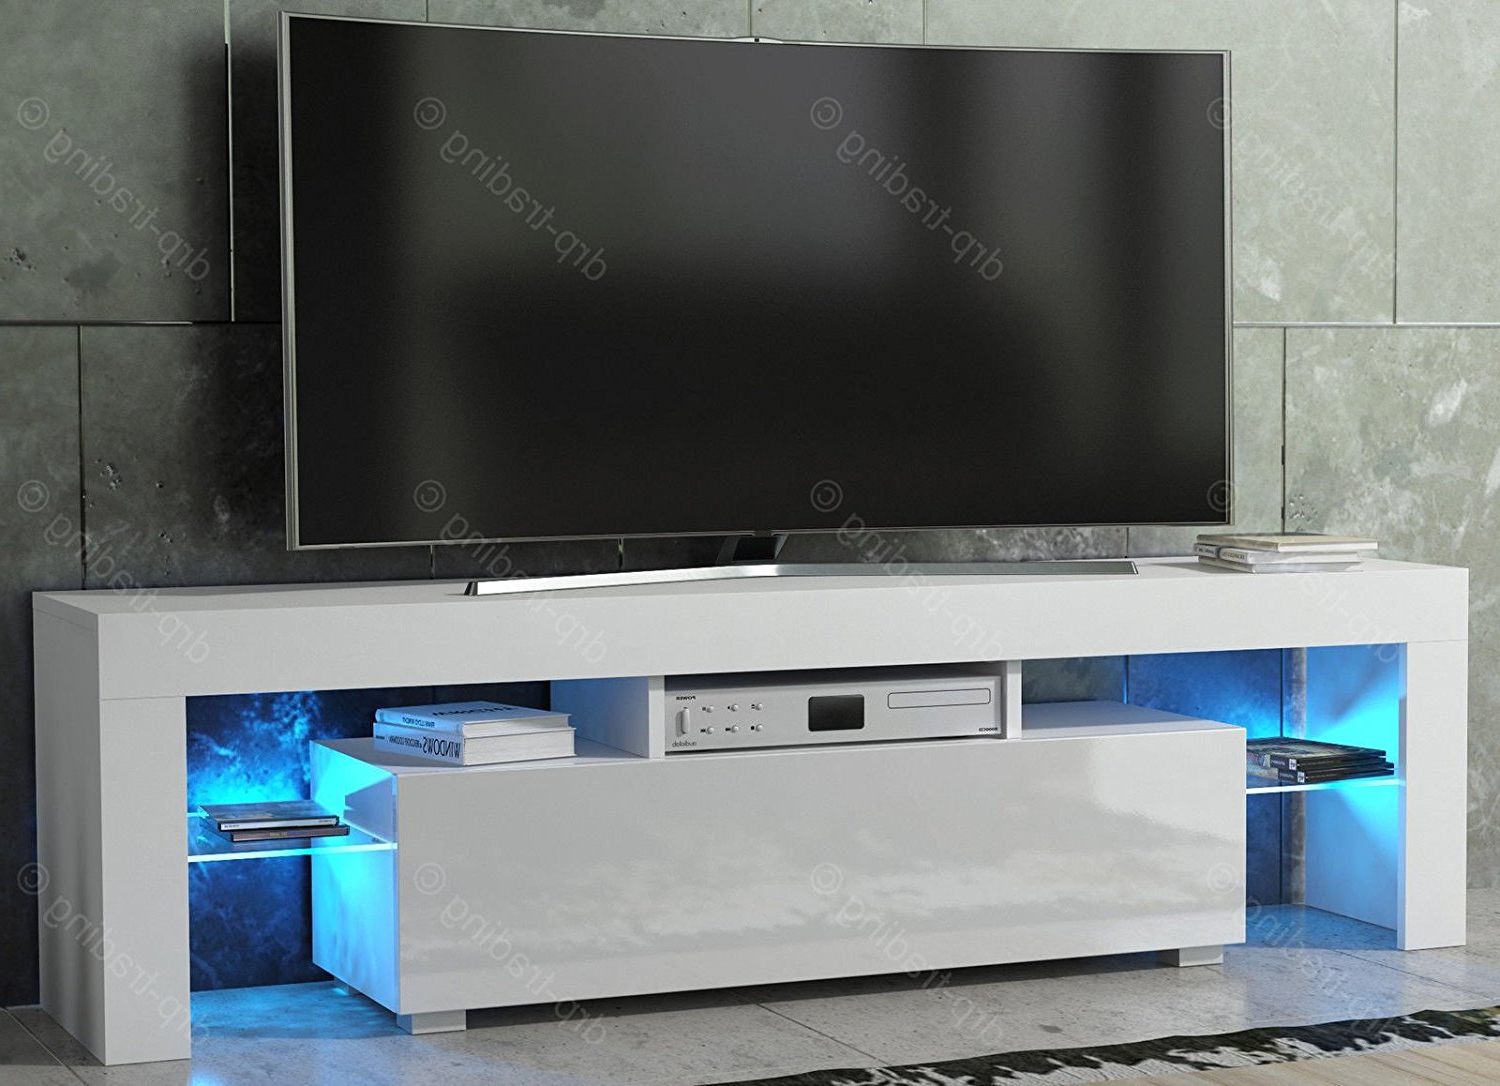 Hot Sale !!! Modern Popular White High Gloss Lcd Mdf Tv Stand – Buy With Regard To Most Up To Date White High Gloss Tv Unit (View 9 of 20)